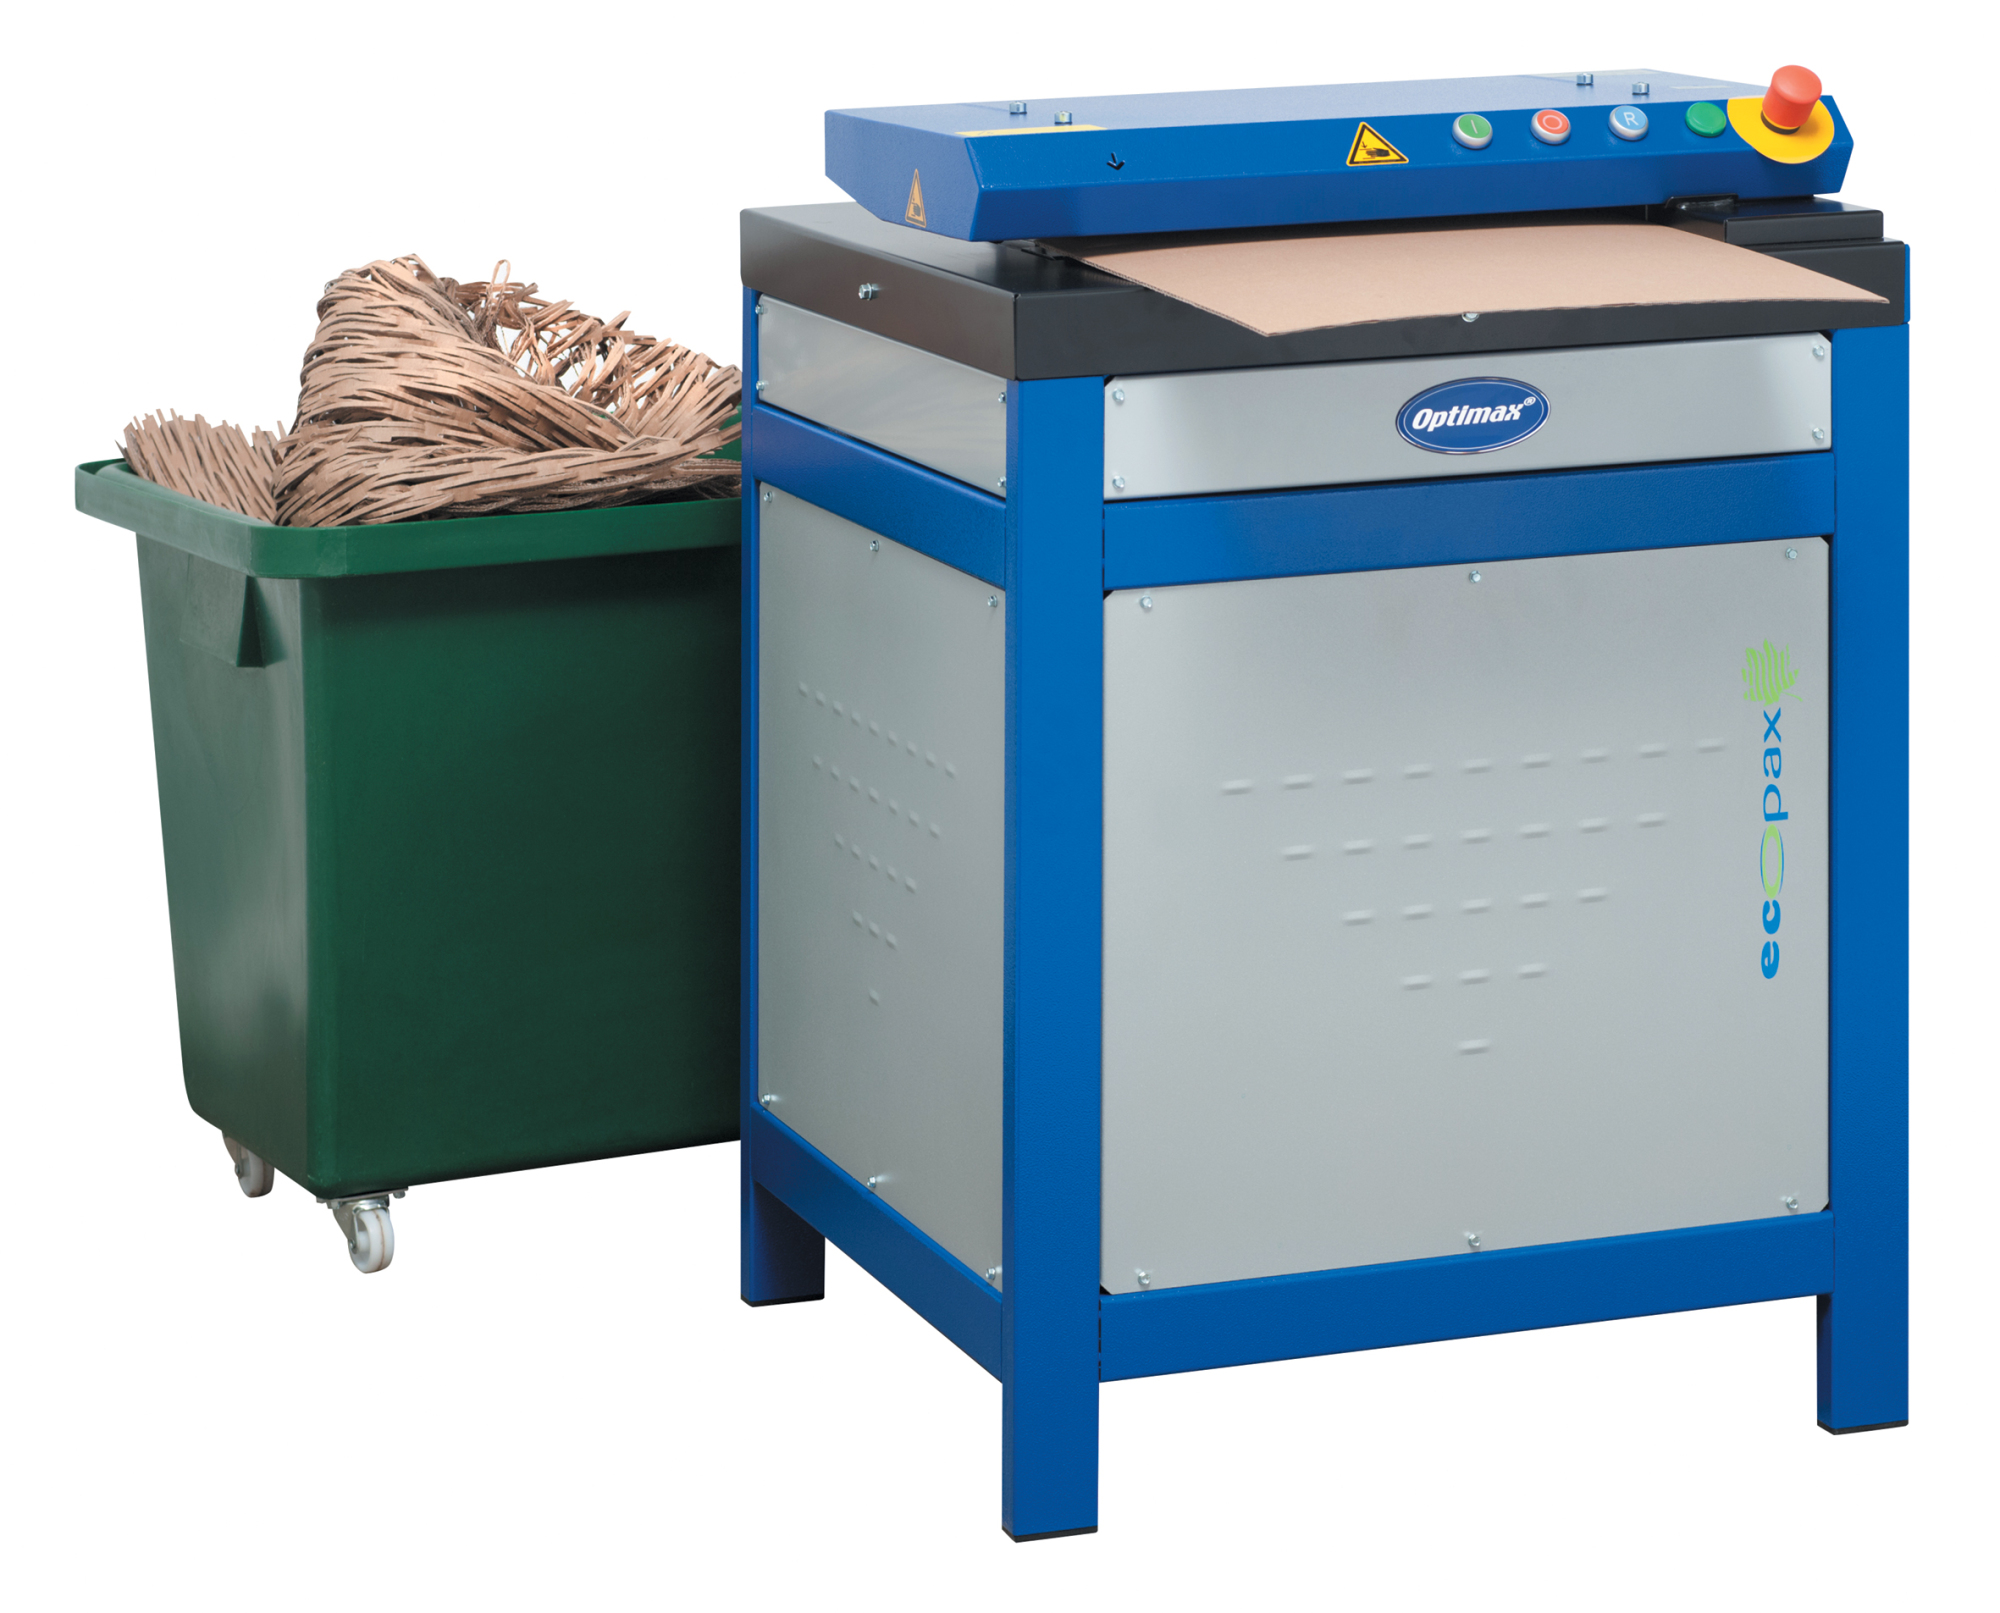 420mm Cardboard Shredder